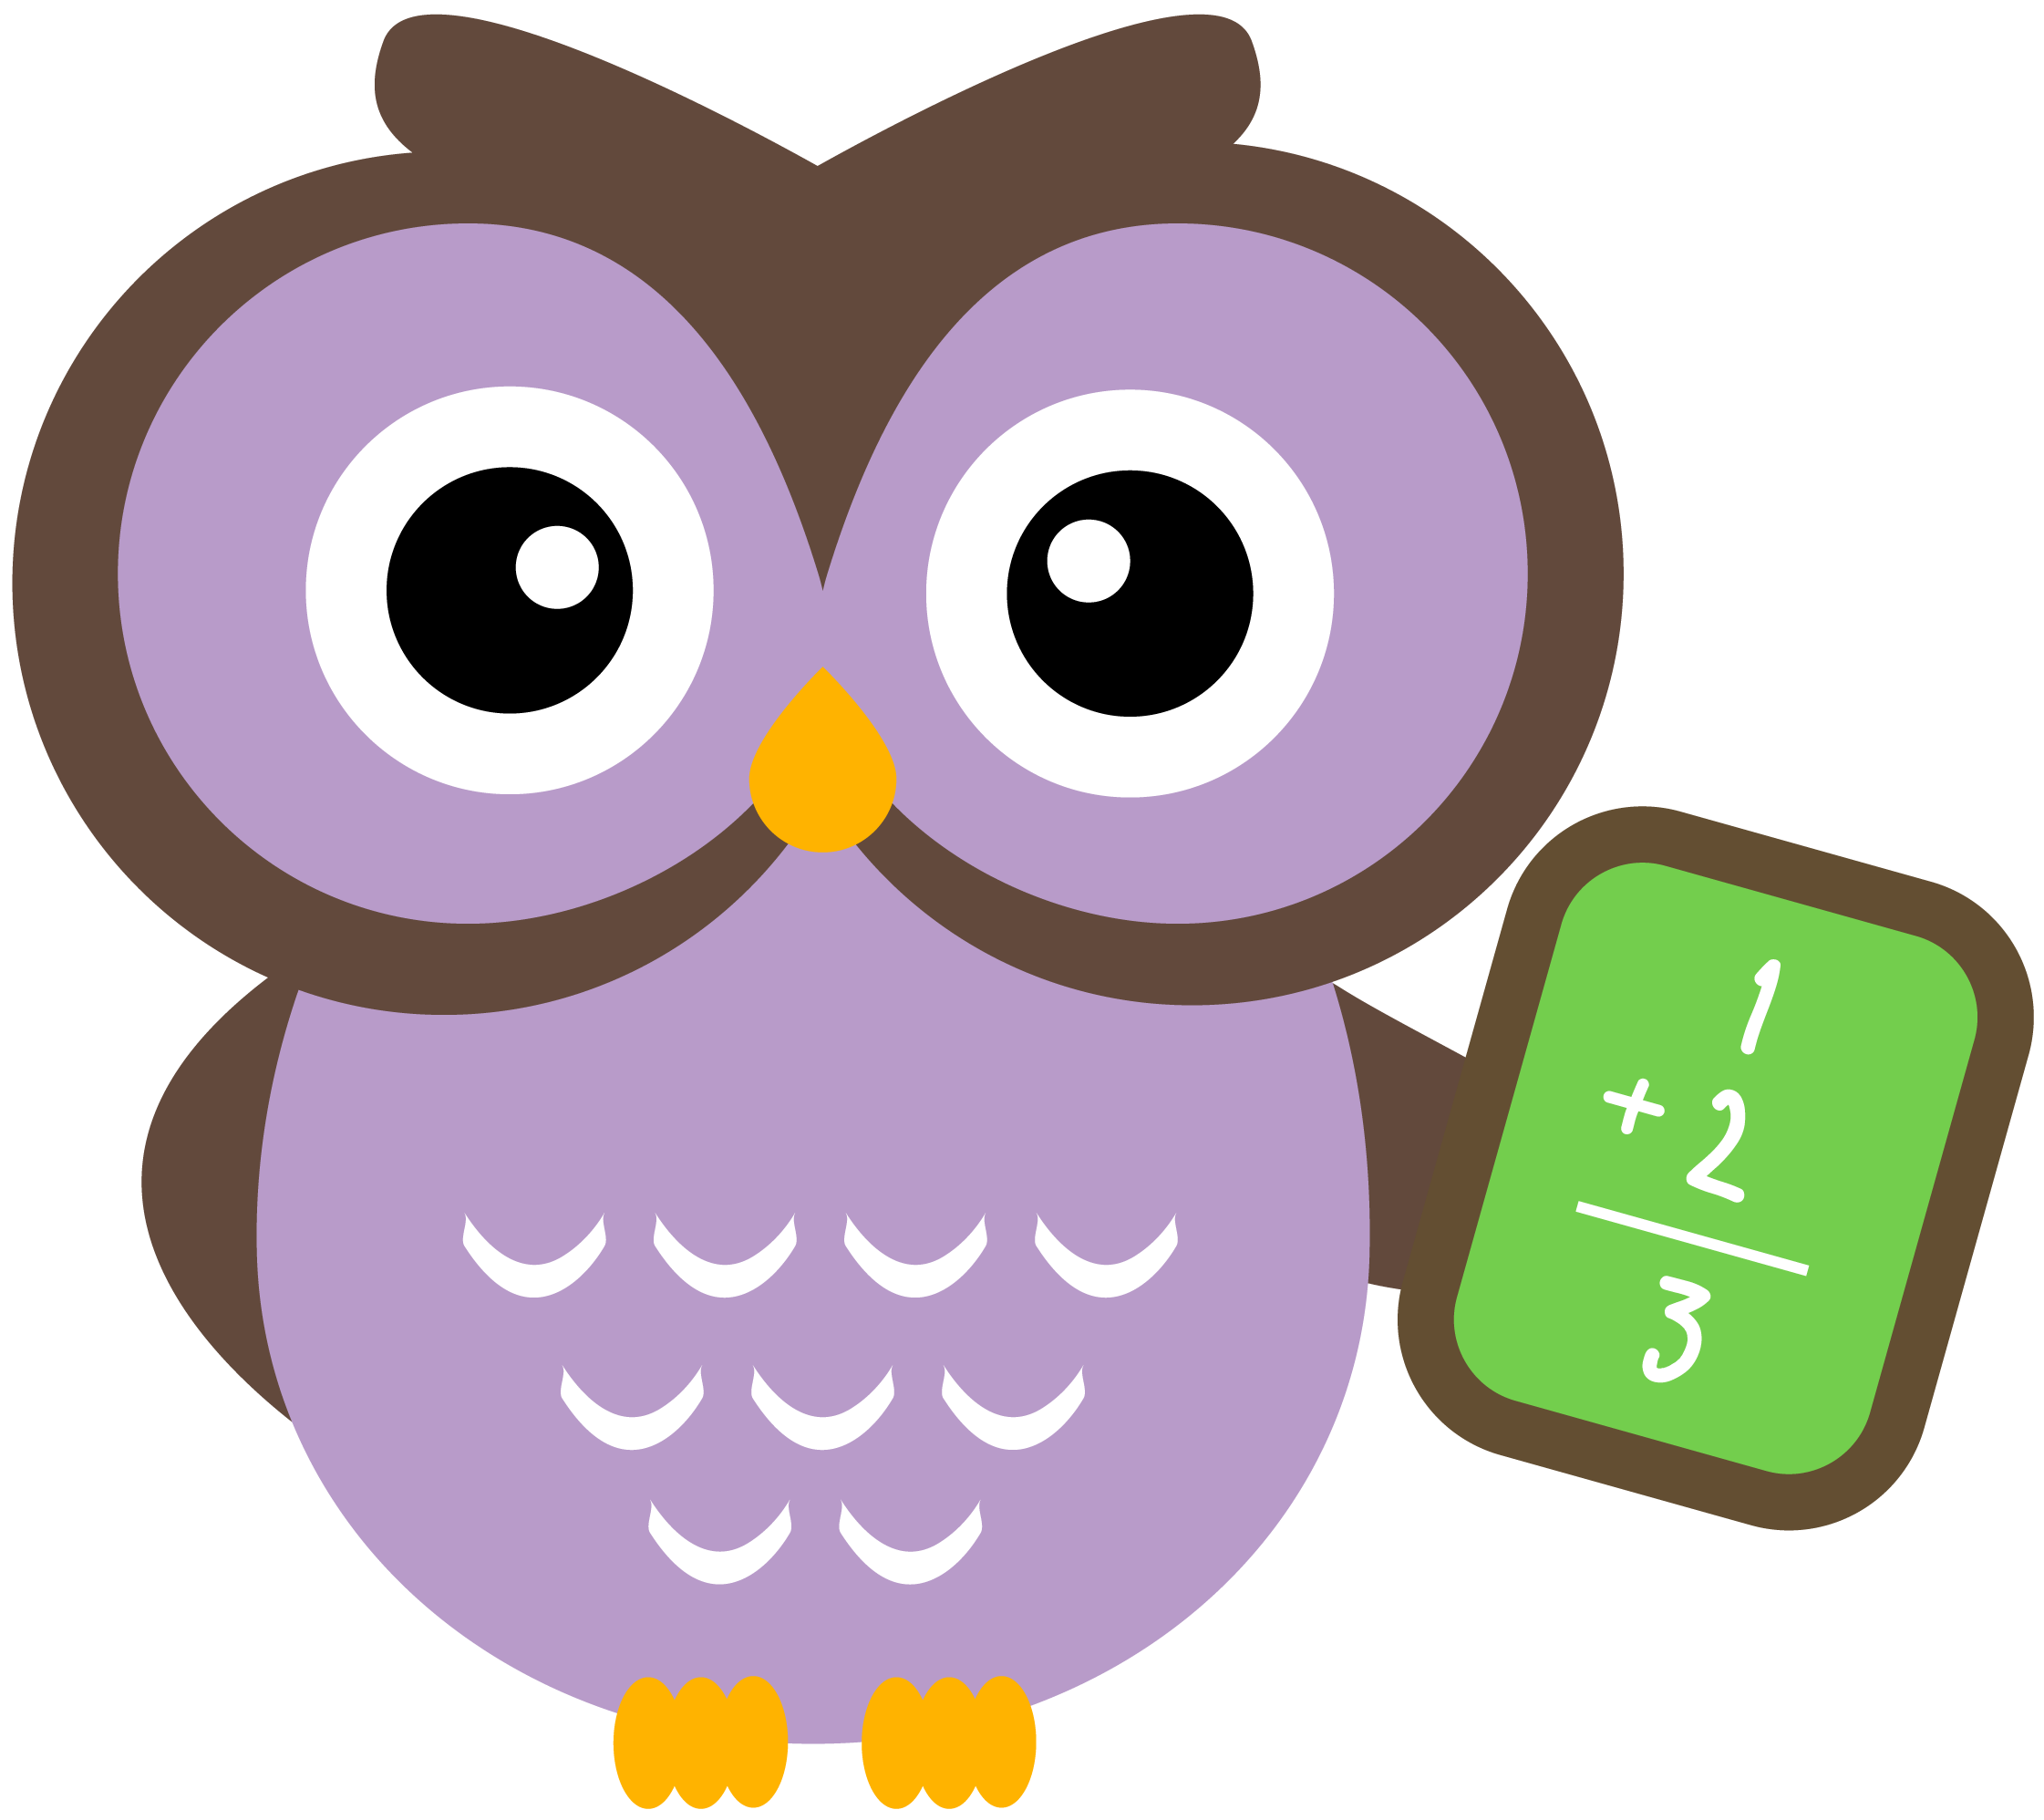 Missing book clipart vector stock 28+ Collection of Math Owl Clipart | High quality, free cliparts ... vector stock